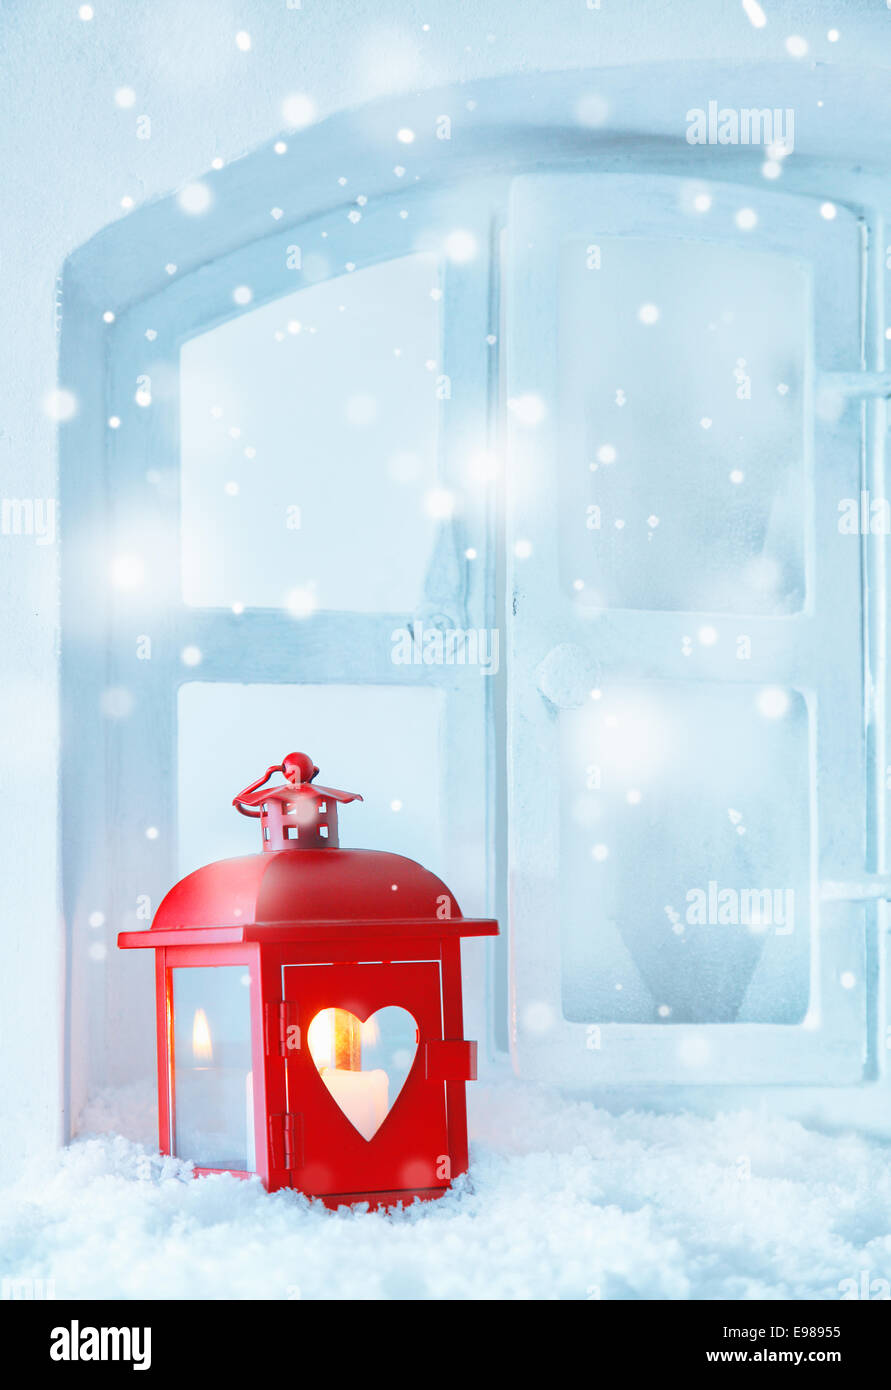 Red Christmas lantern guiding light with a glowing burning candle on a windowsill in falling snow with copyspace - Stock Image